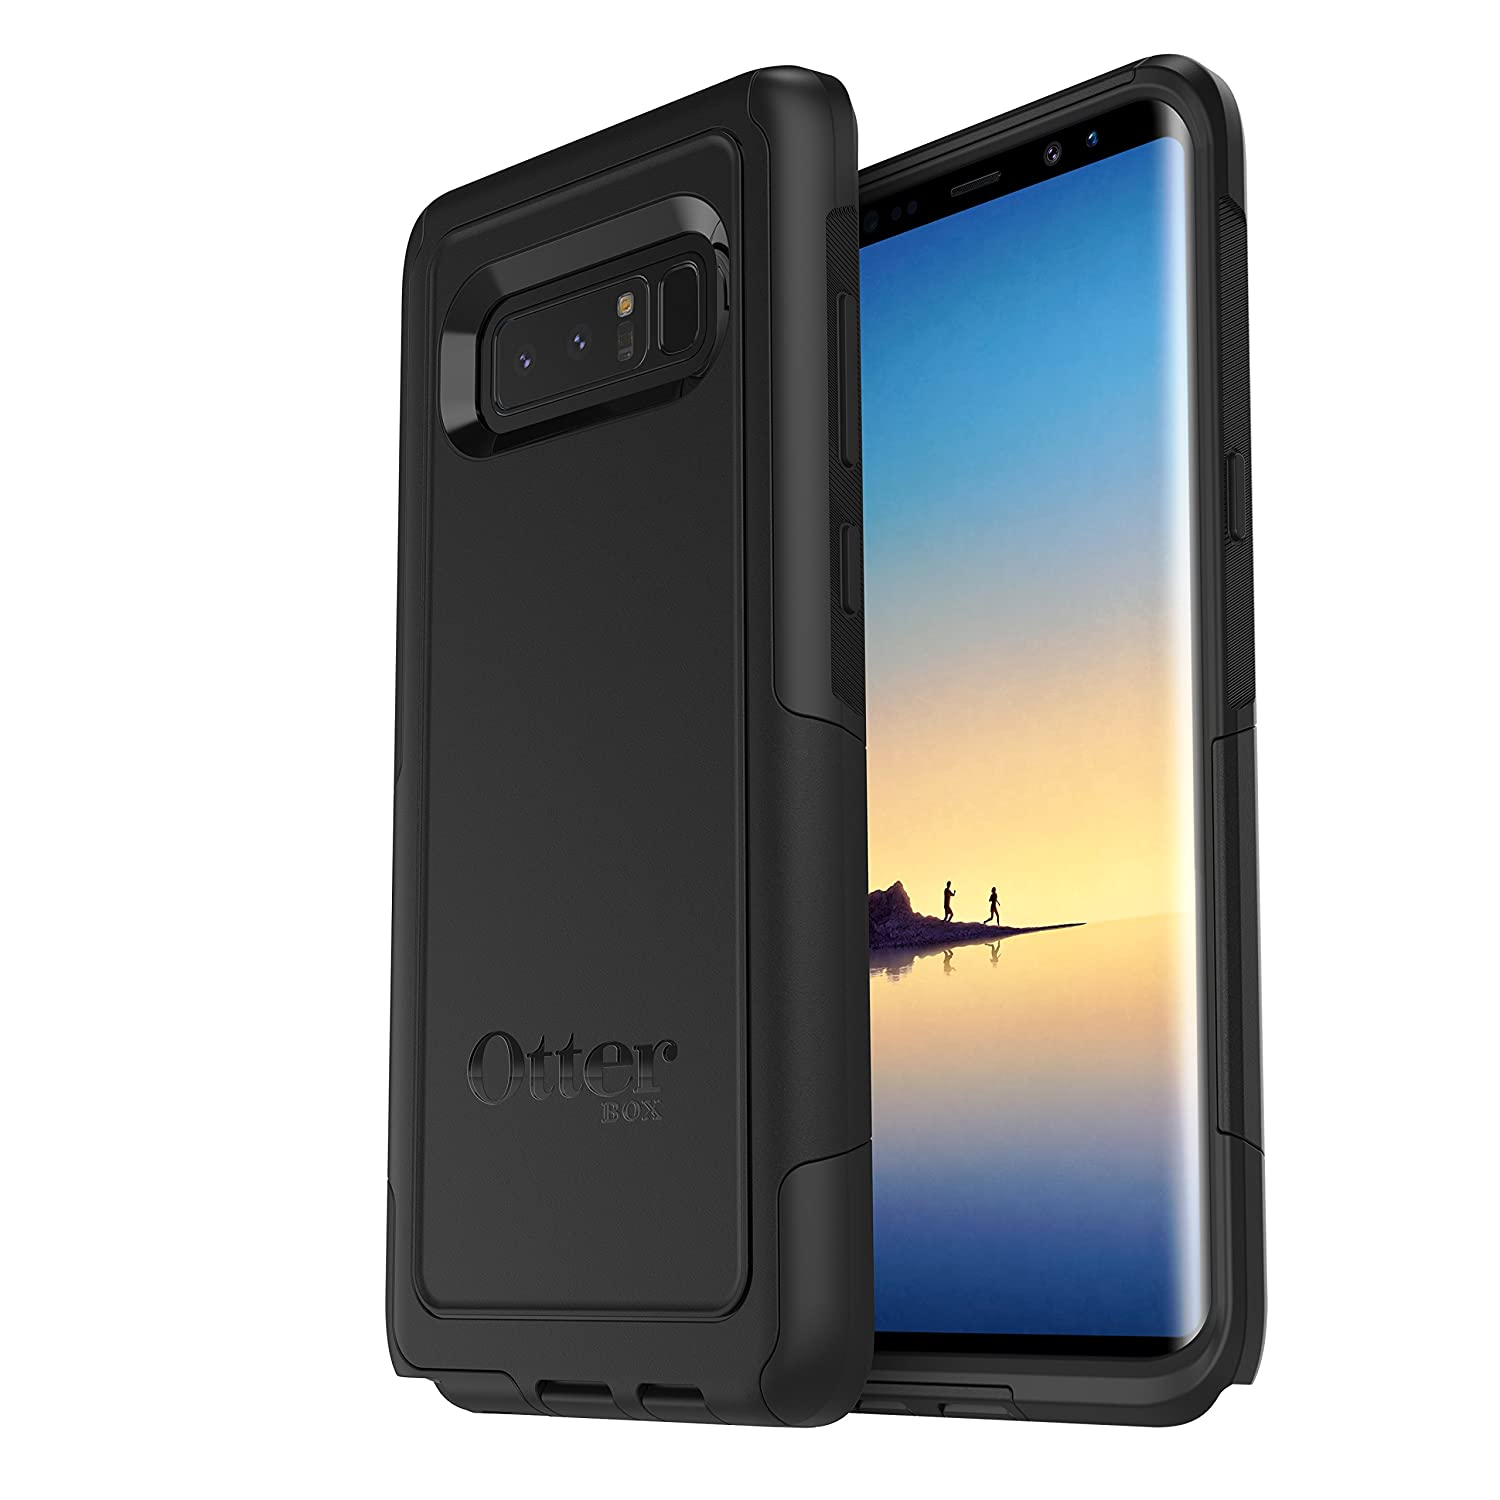 Samsung Galaxy Note 8 Case Otterbox